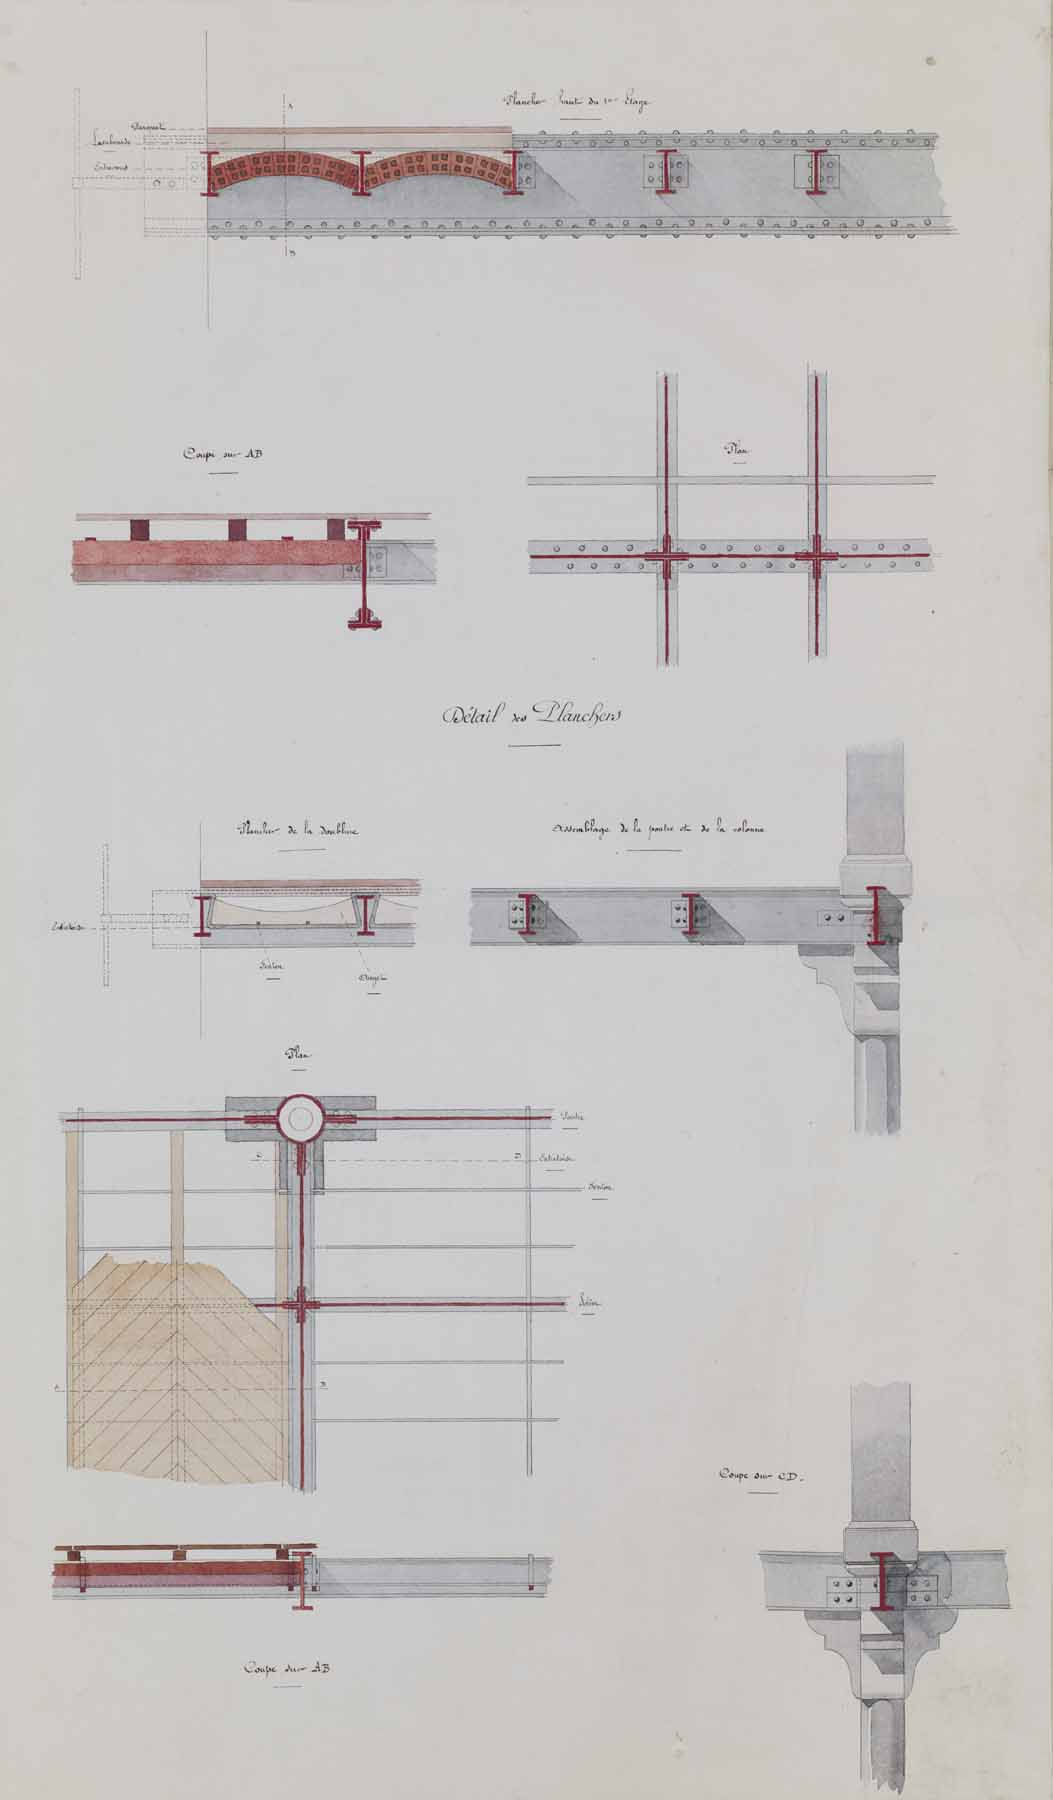 """Jules-Germain Olivier (French, 1869-1940), Ironwork: Details of the Floors , c. 1905, ink and watercolor on paper, 41 1/4 x 26 1/4"""" framed"""